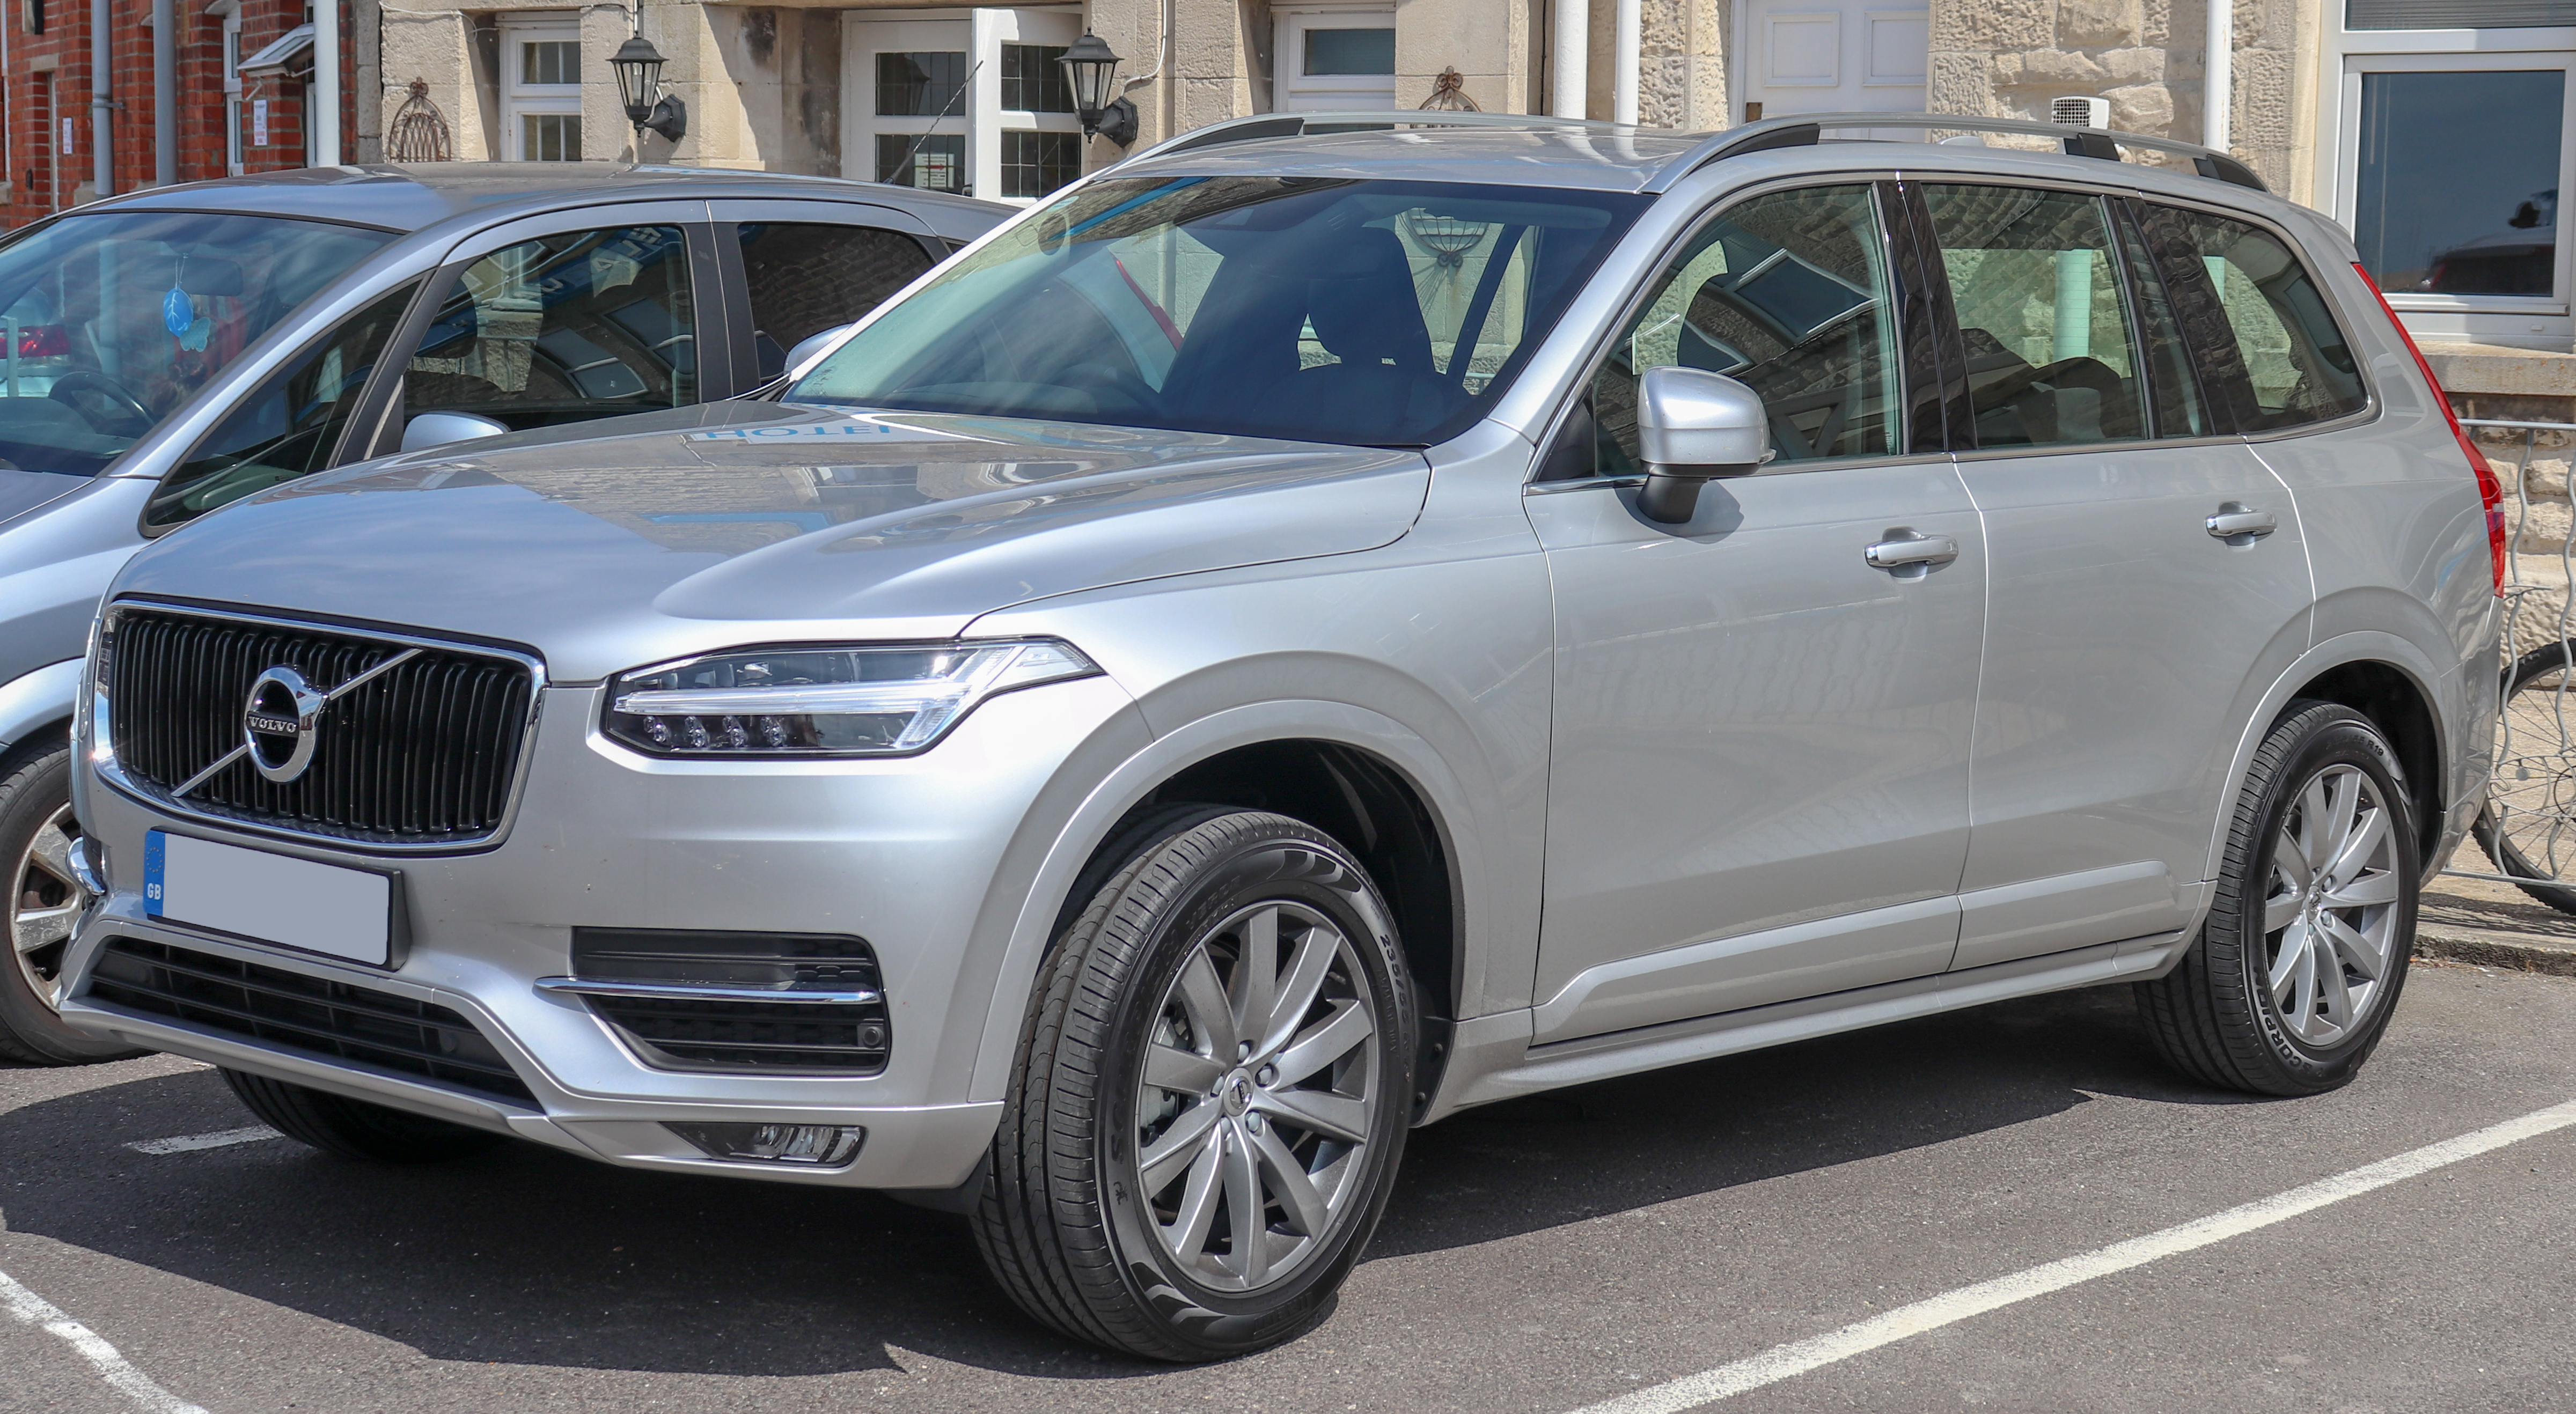 20 Concept of When Does 2020 Volvo Xc90 Come Out Redesign and Concept for When Does 2020 Volvo Xc90 Come Out